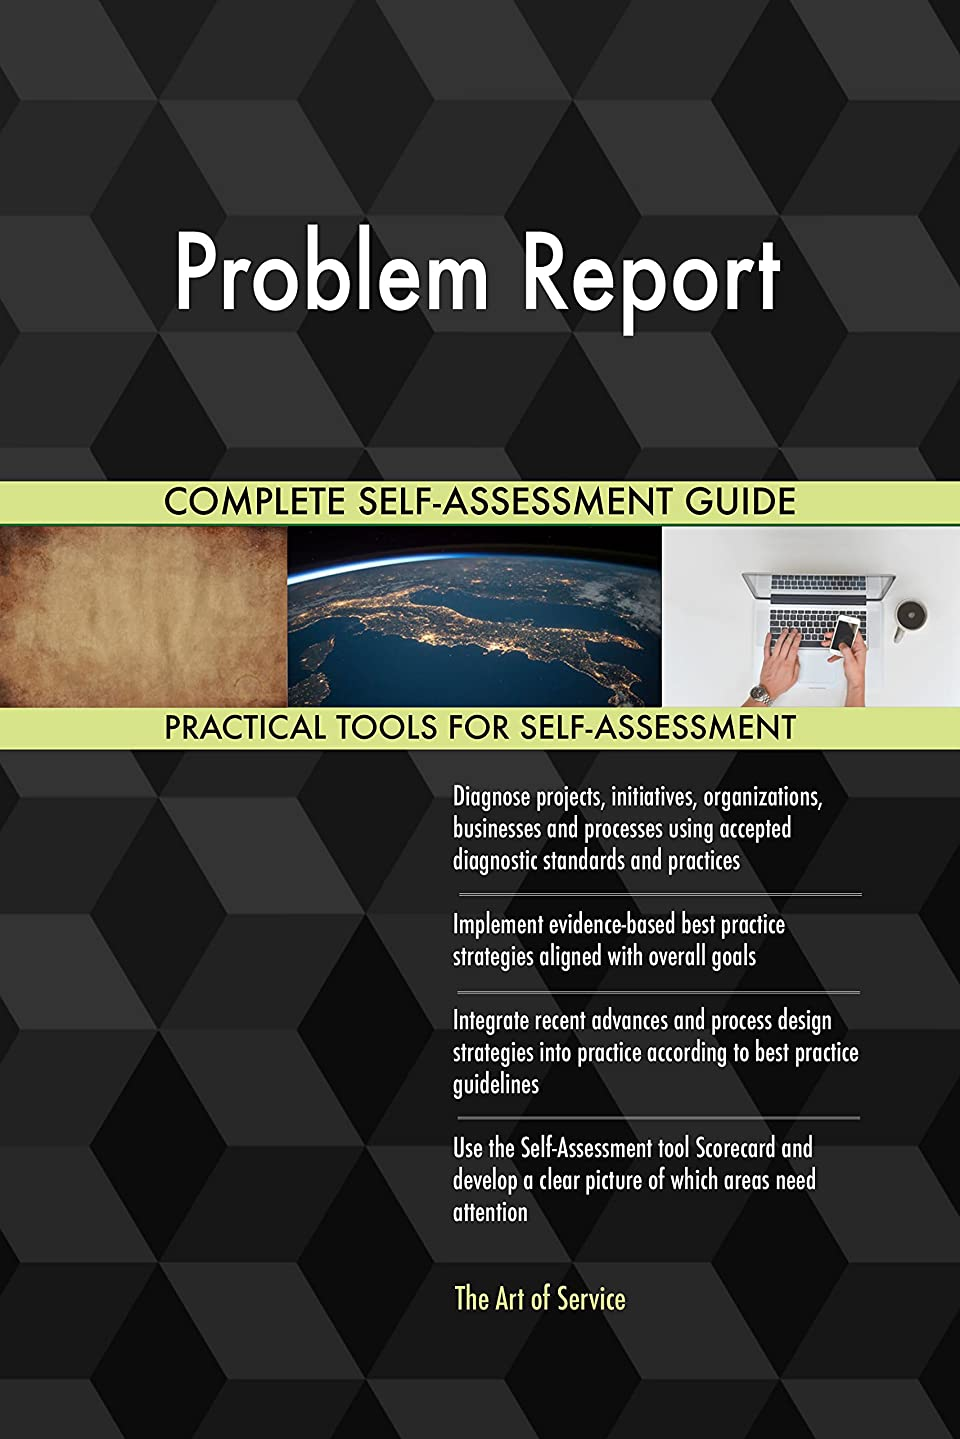 Problem Report Toolkit: best-practice templates, step-by-step work plans and maturity diagnostics